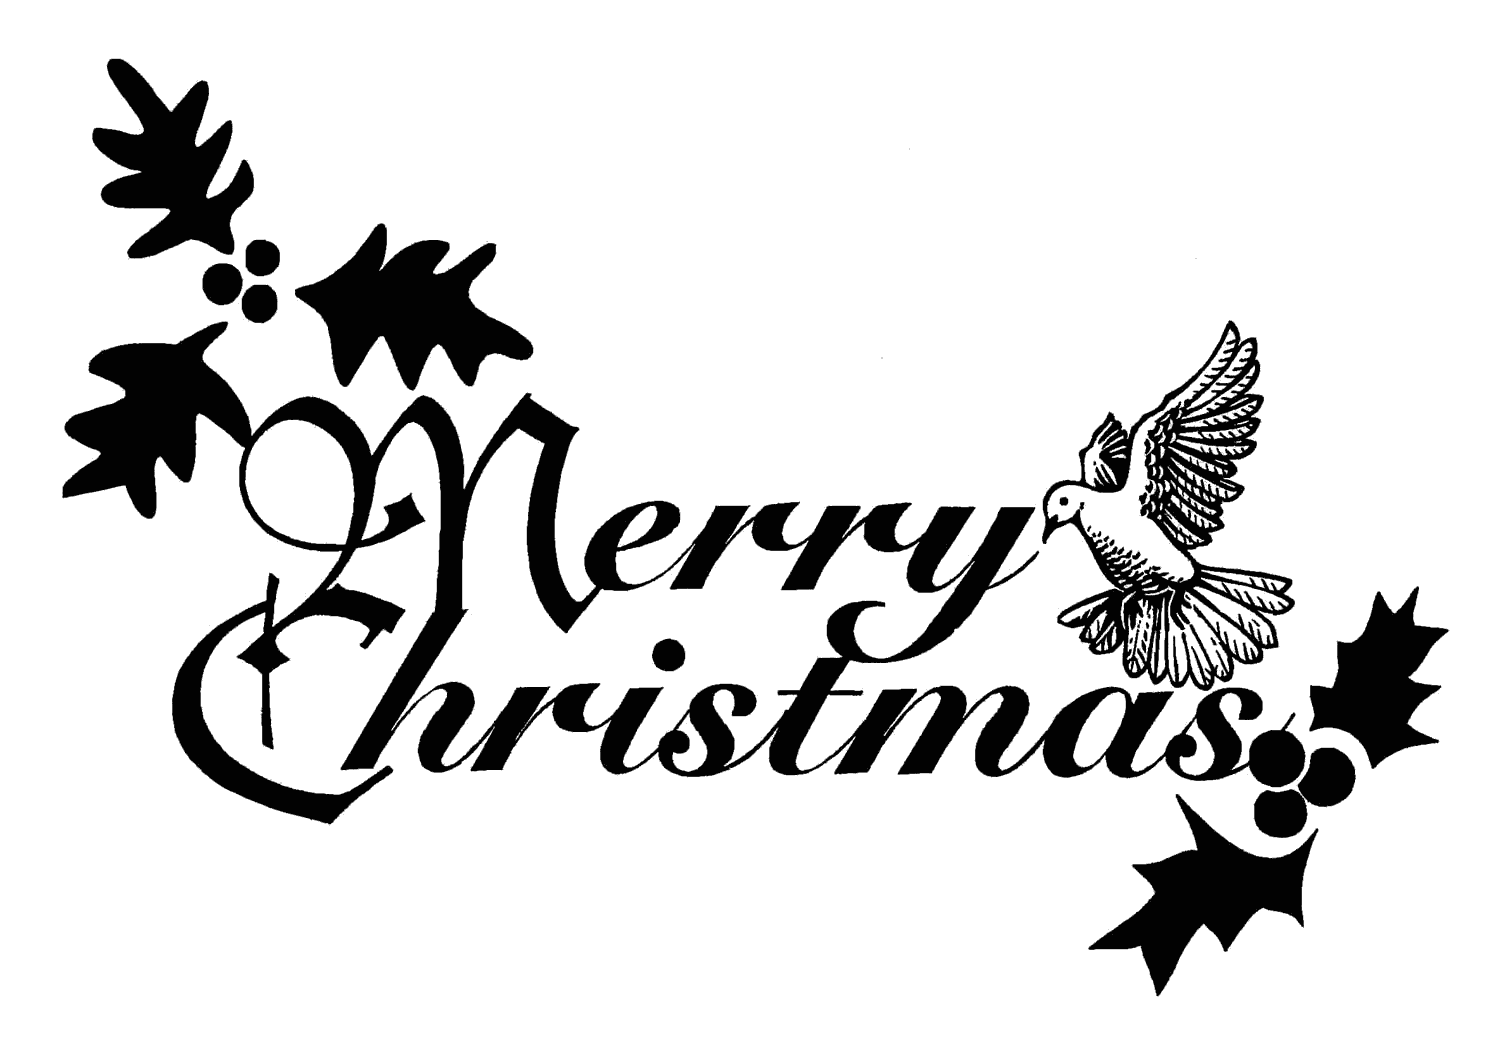 Merry Christmas design black and white clip art image with dove and ...